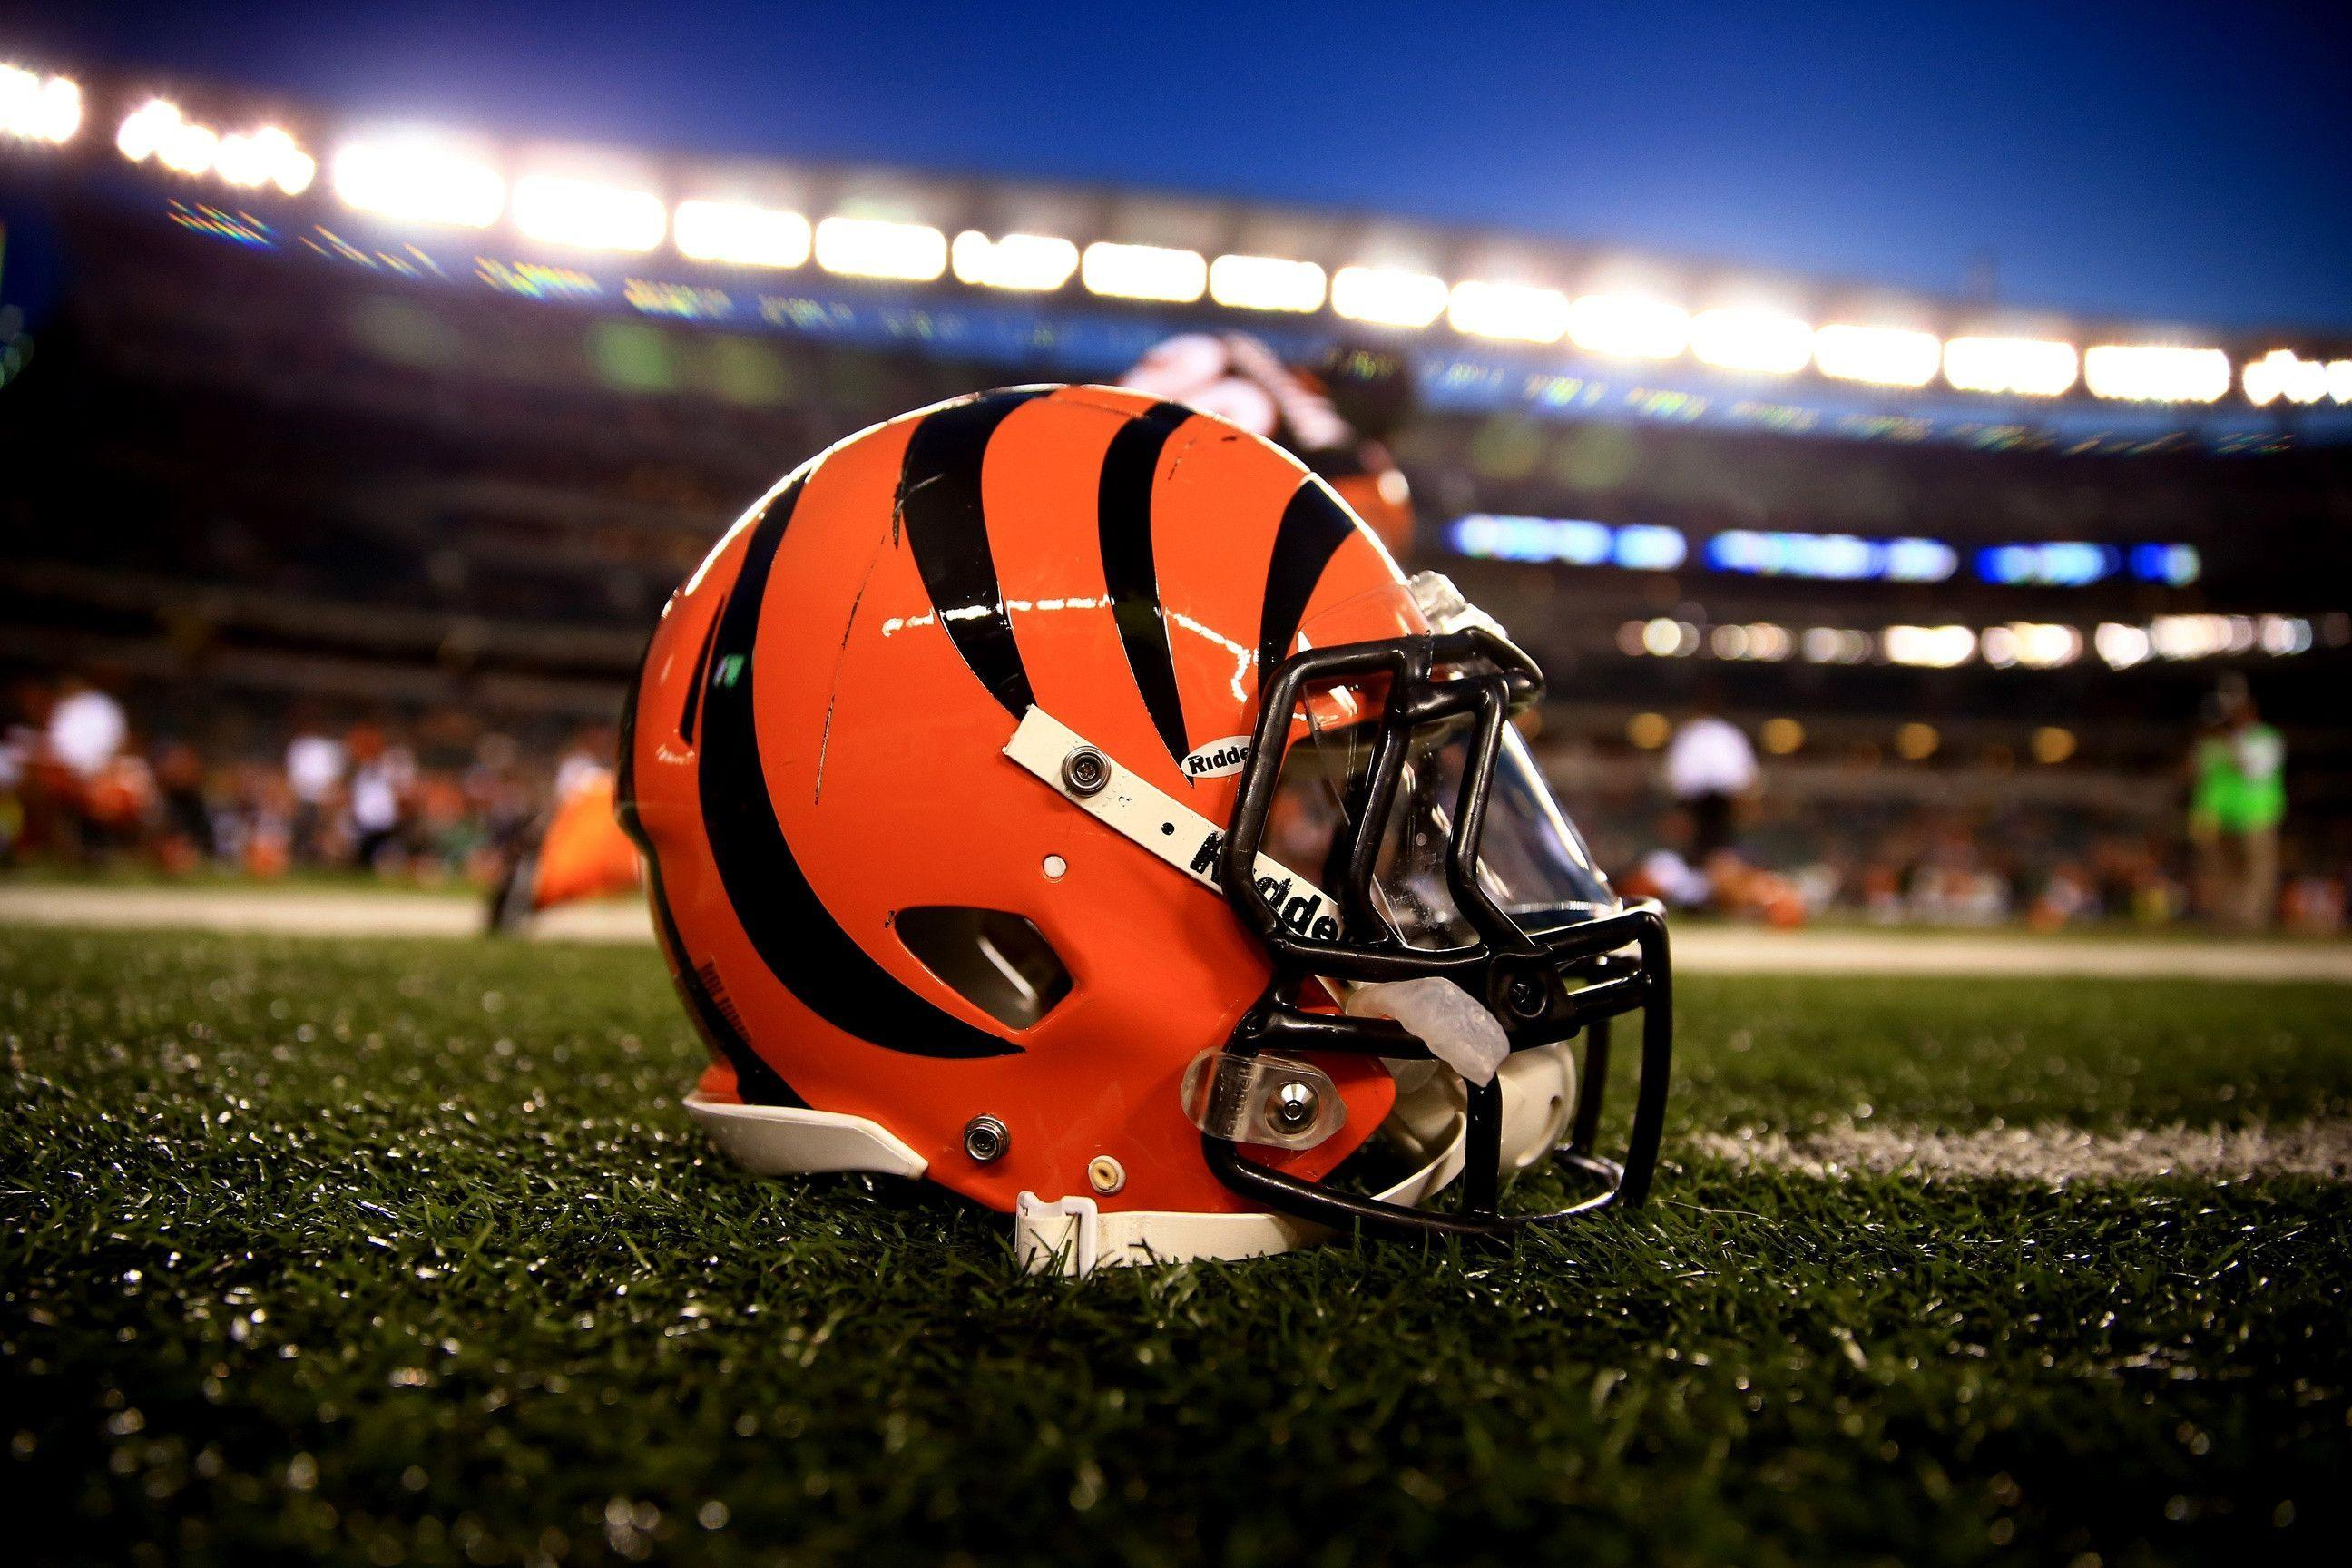 CINCINNATI BENGALS nfl football rq wallpaper | 2592x1728 | 157670 ...